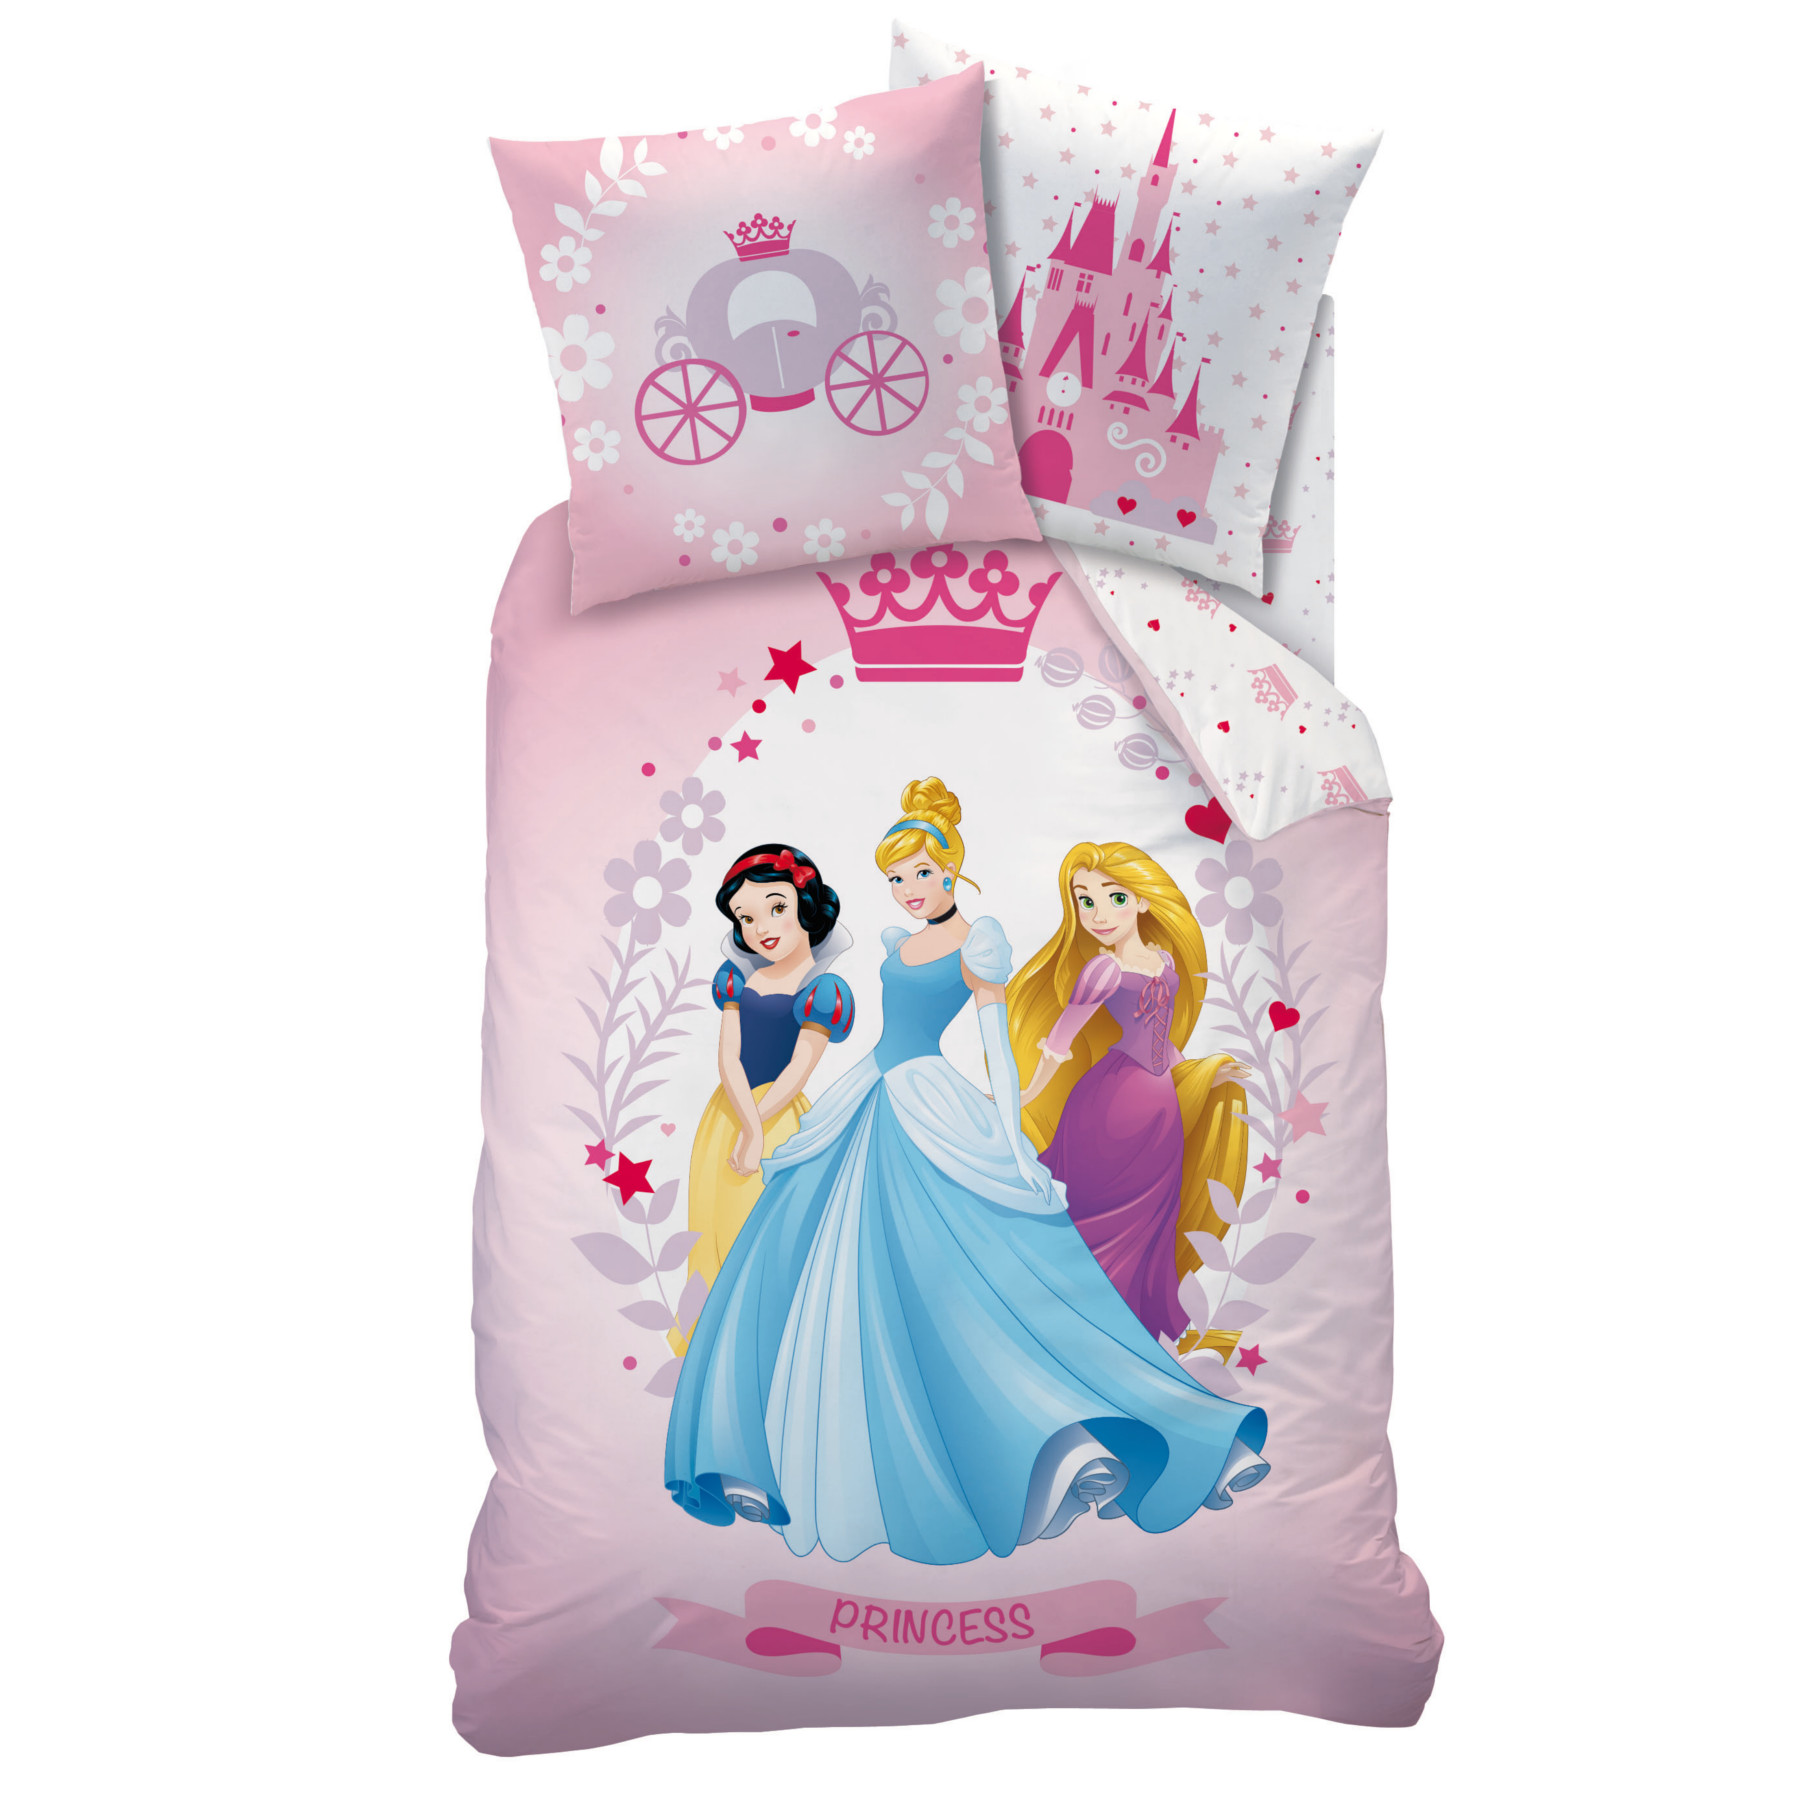 housse de couette disney princesse 28 images linge de lit princesse disney pour 1 personne. Black Bedroom Furniture Sets. Home Design Ideas